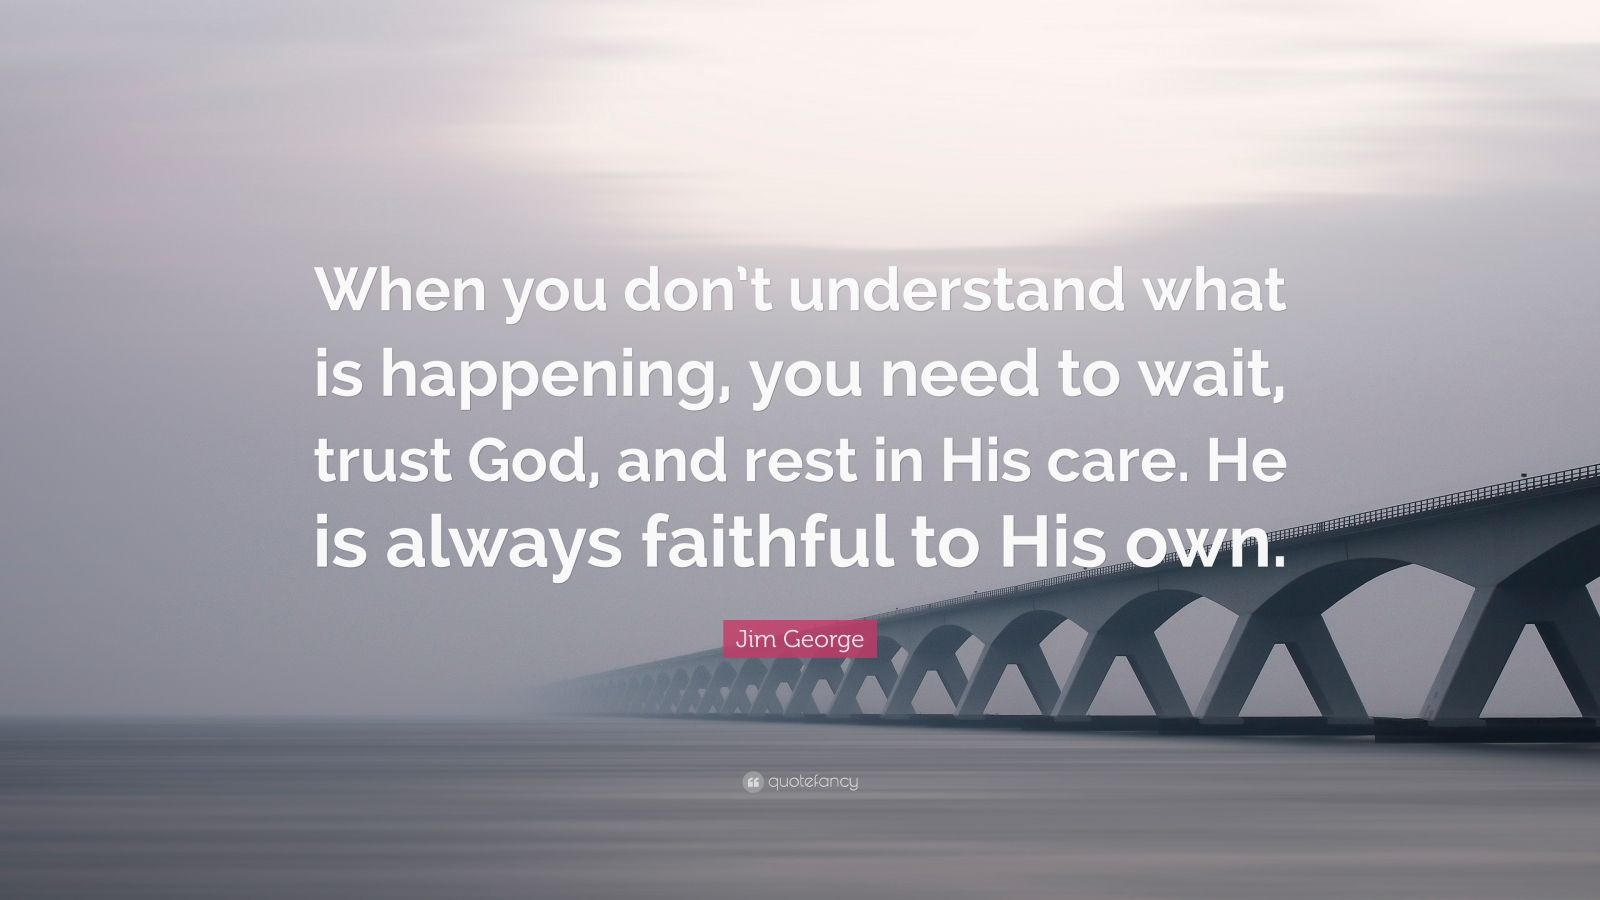 """Jim George Quote: """"When you don't understand what is happening, you need to wait, trust God, and rest in His care. He is always faithful to His own."""""""